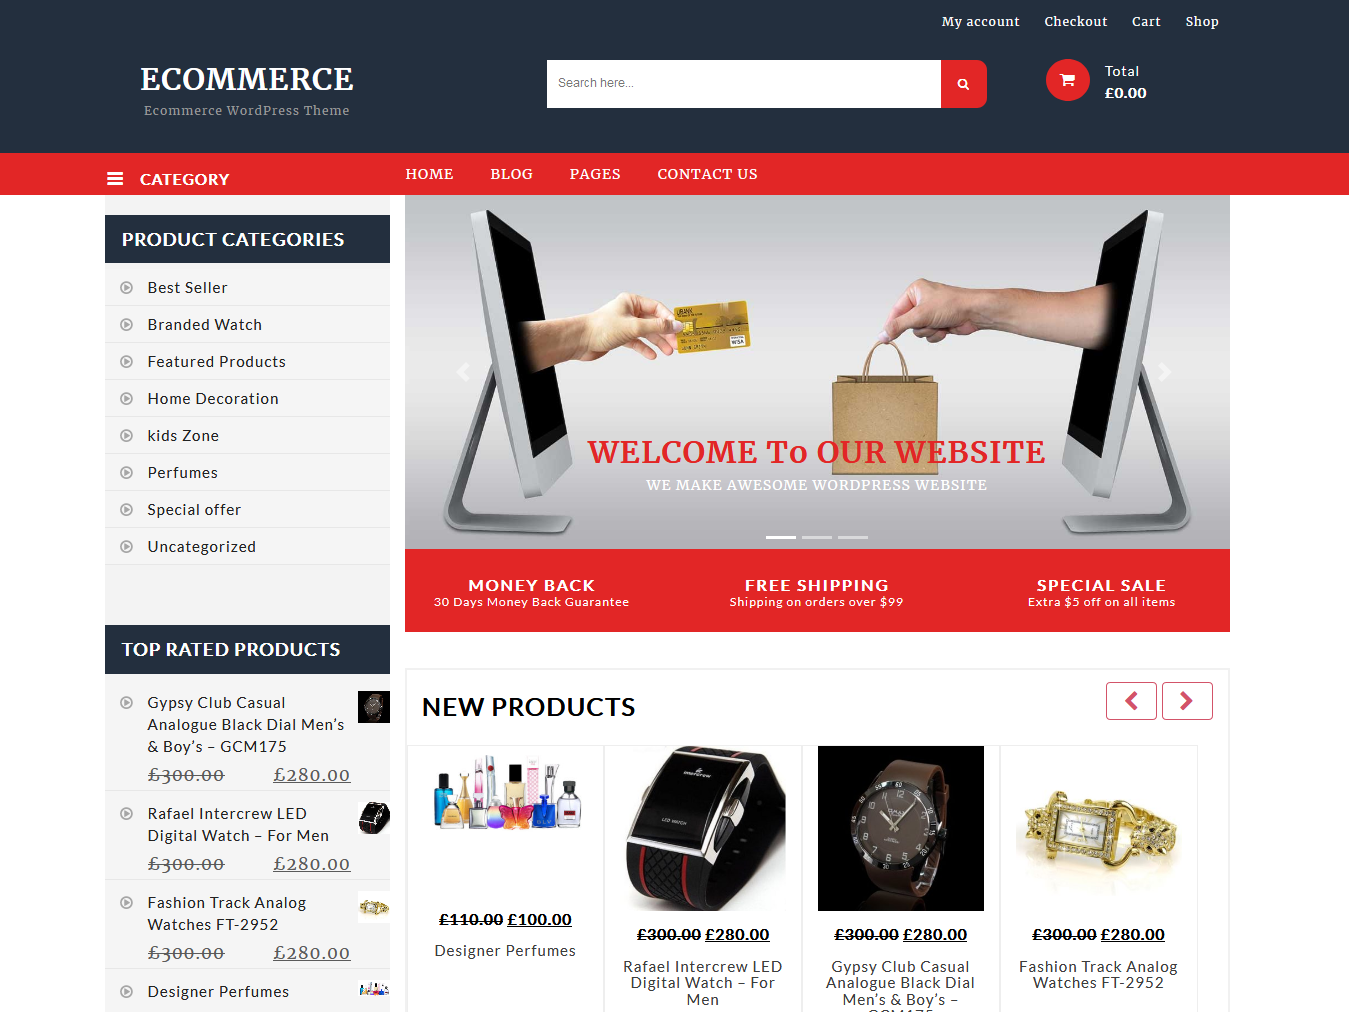 Ecommerce Shop - Best Free WordPress WooCommerce Theme